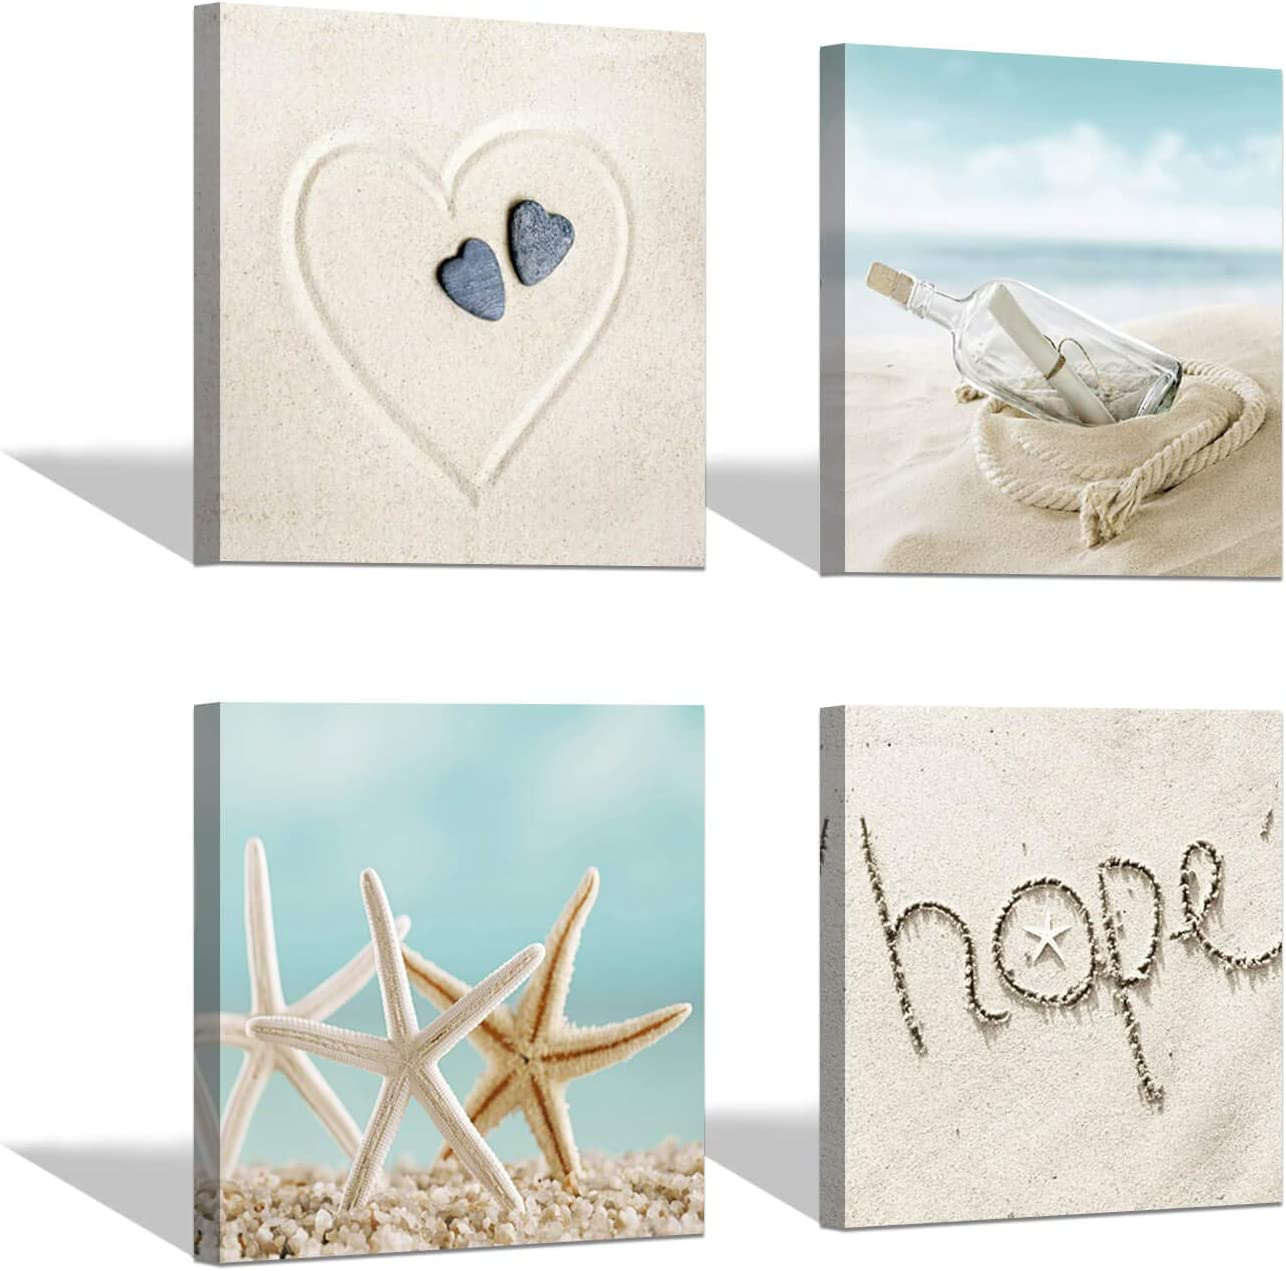 Beach Sandy Pictures Wall Art: Seascape Starfish & Love Hope Shapes with Drift Bottle Artwork Print Pictures for Wall Decoration(12'' x 12'' x 4 Panels)